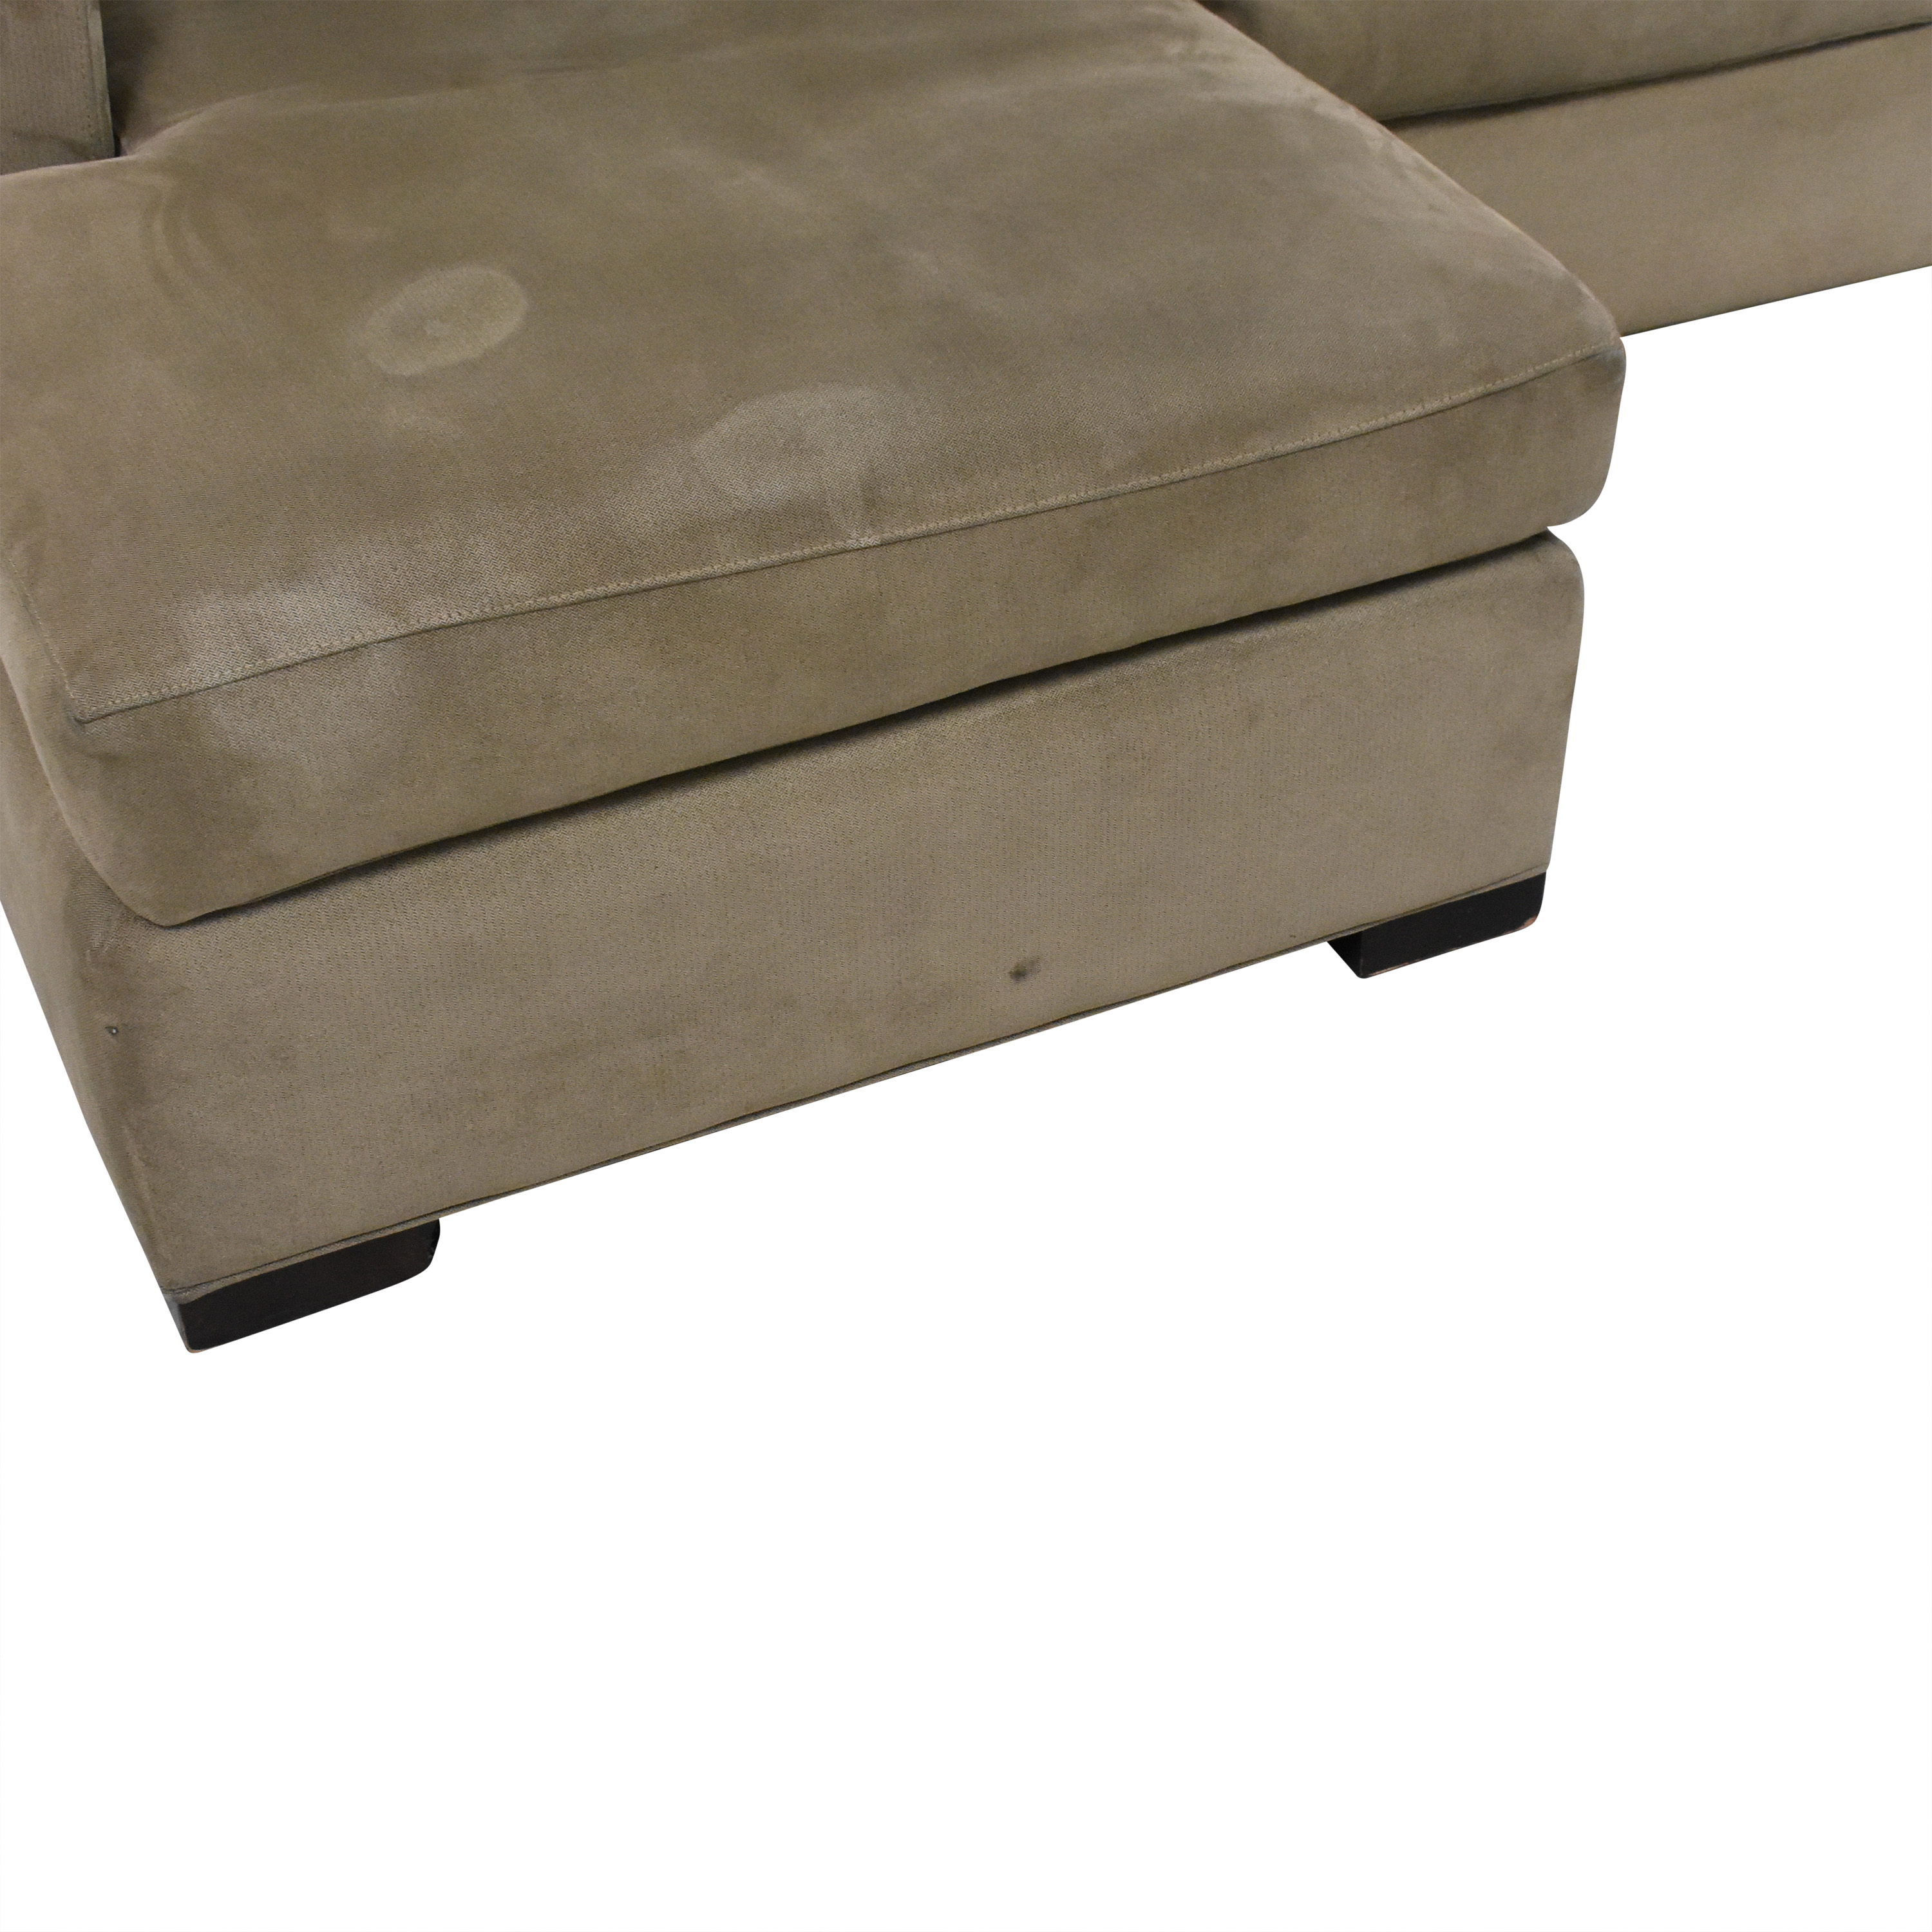 Crate & Barrel Crate & Barrel Axis II Chaise Sectional Sofa discount